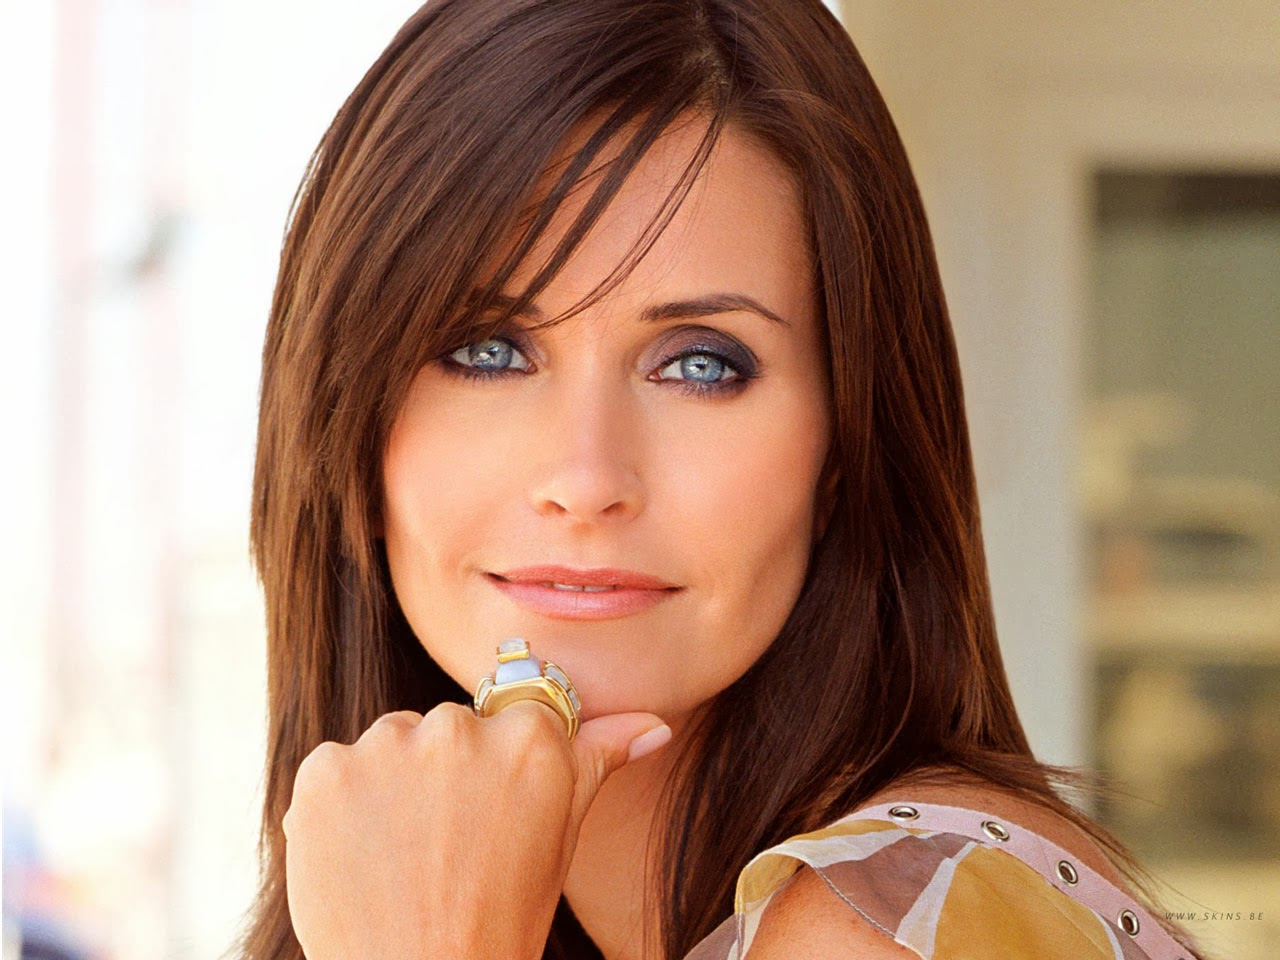 Courteney Cox Who Is?